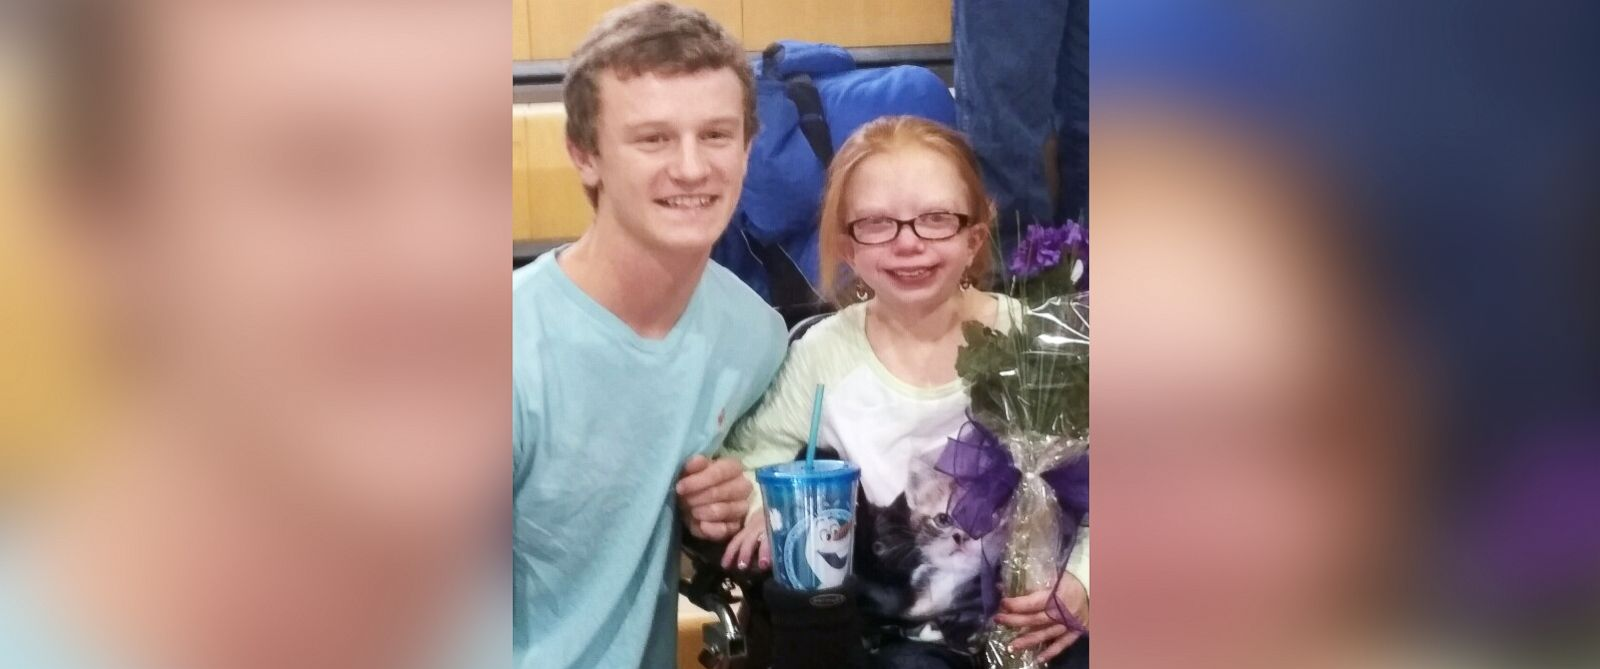 PHOTO: Autumn Pollard was unexpectedly asked to her high school prom by her friend, Cope Robinson.